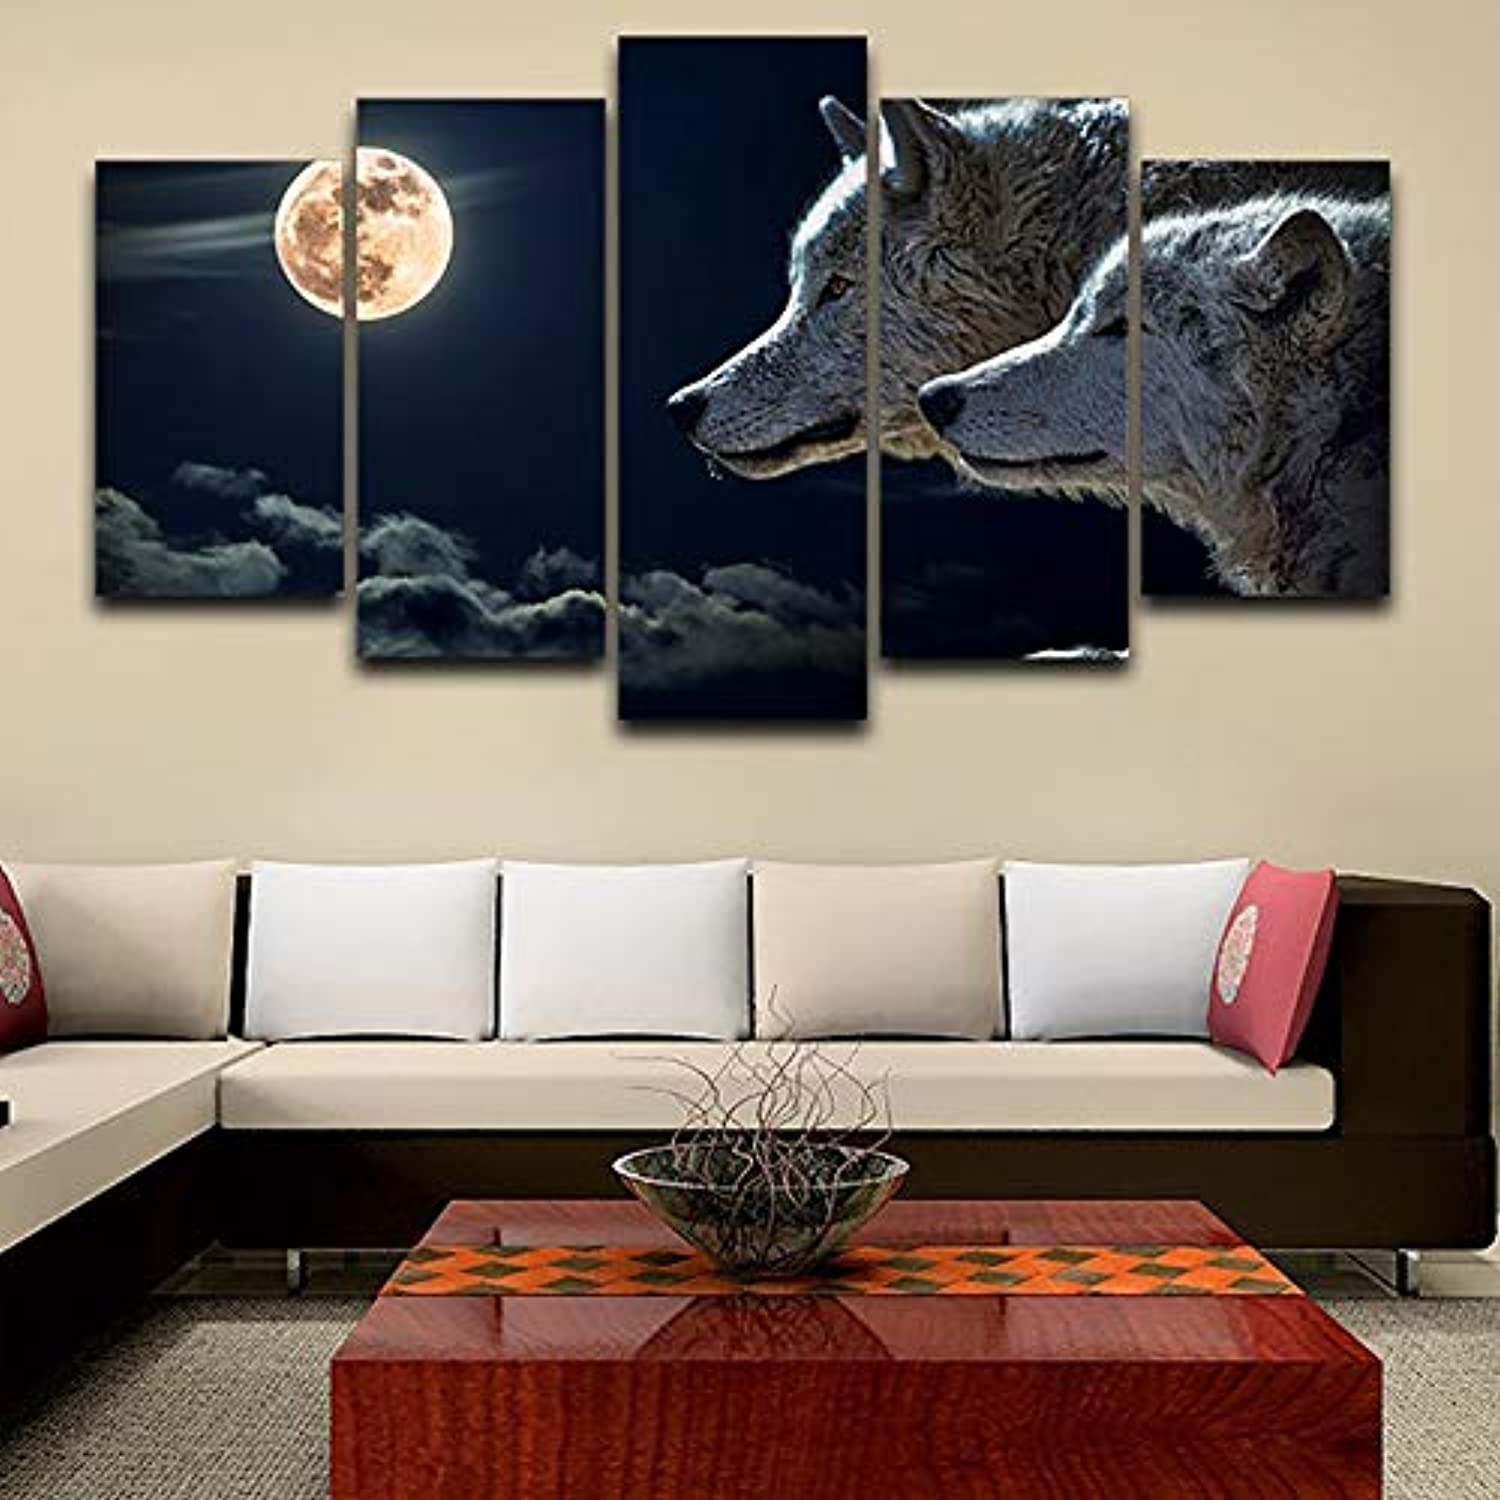 Decoration Posters Frame Living Room HD Printed 5 Piece Pcs Wolves Moon Modular Picture Wall Art Home Modern Painting On Canvas